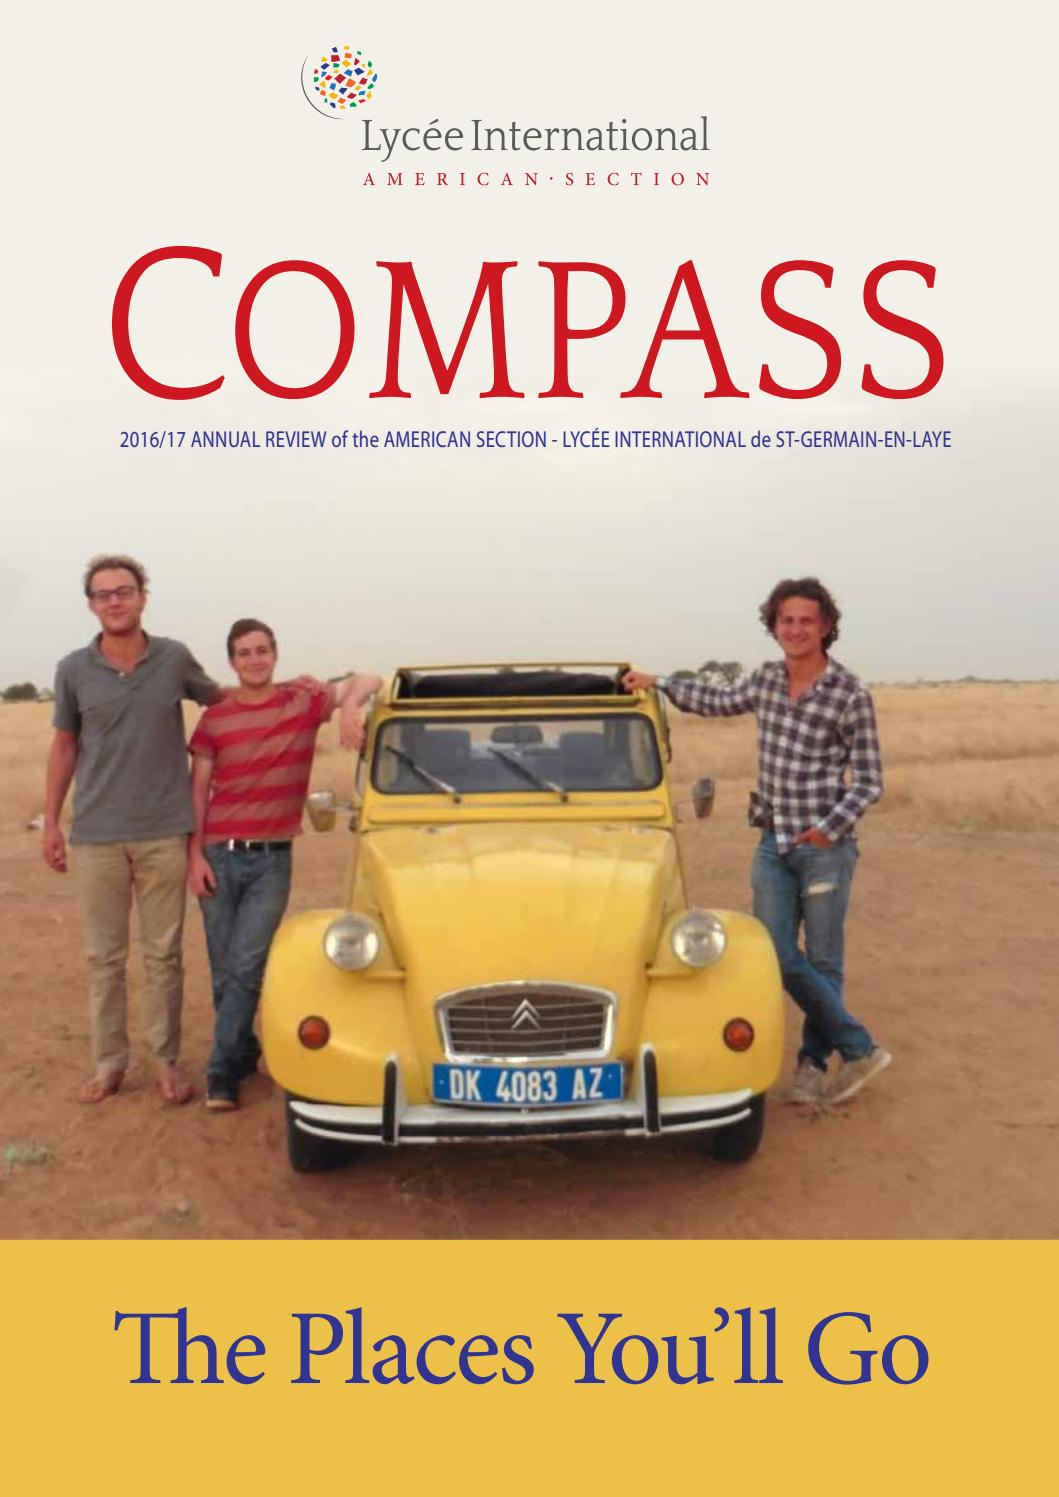 Compass - The Places You'll Go by American Section Lycée